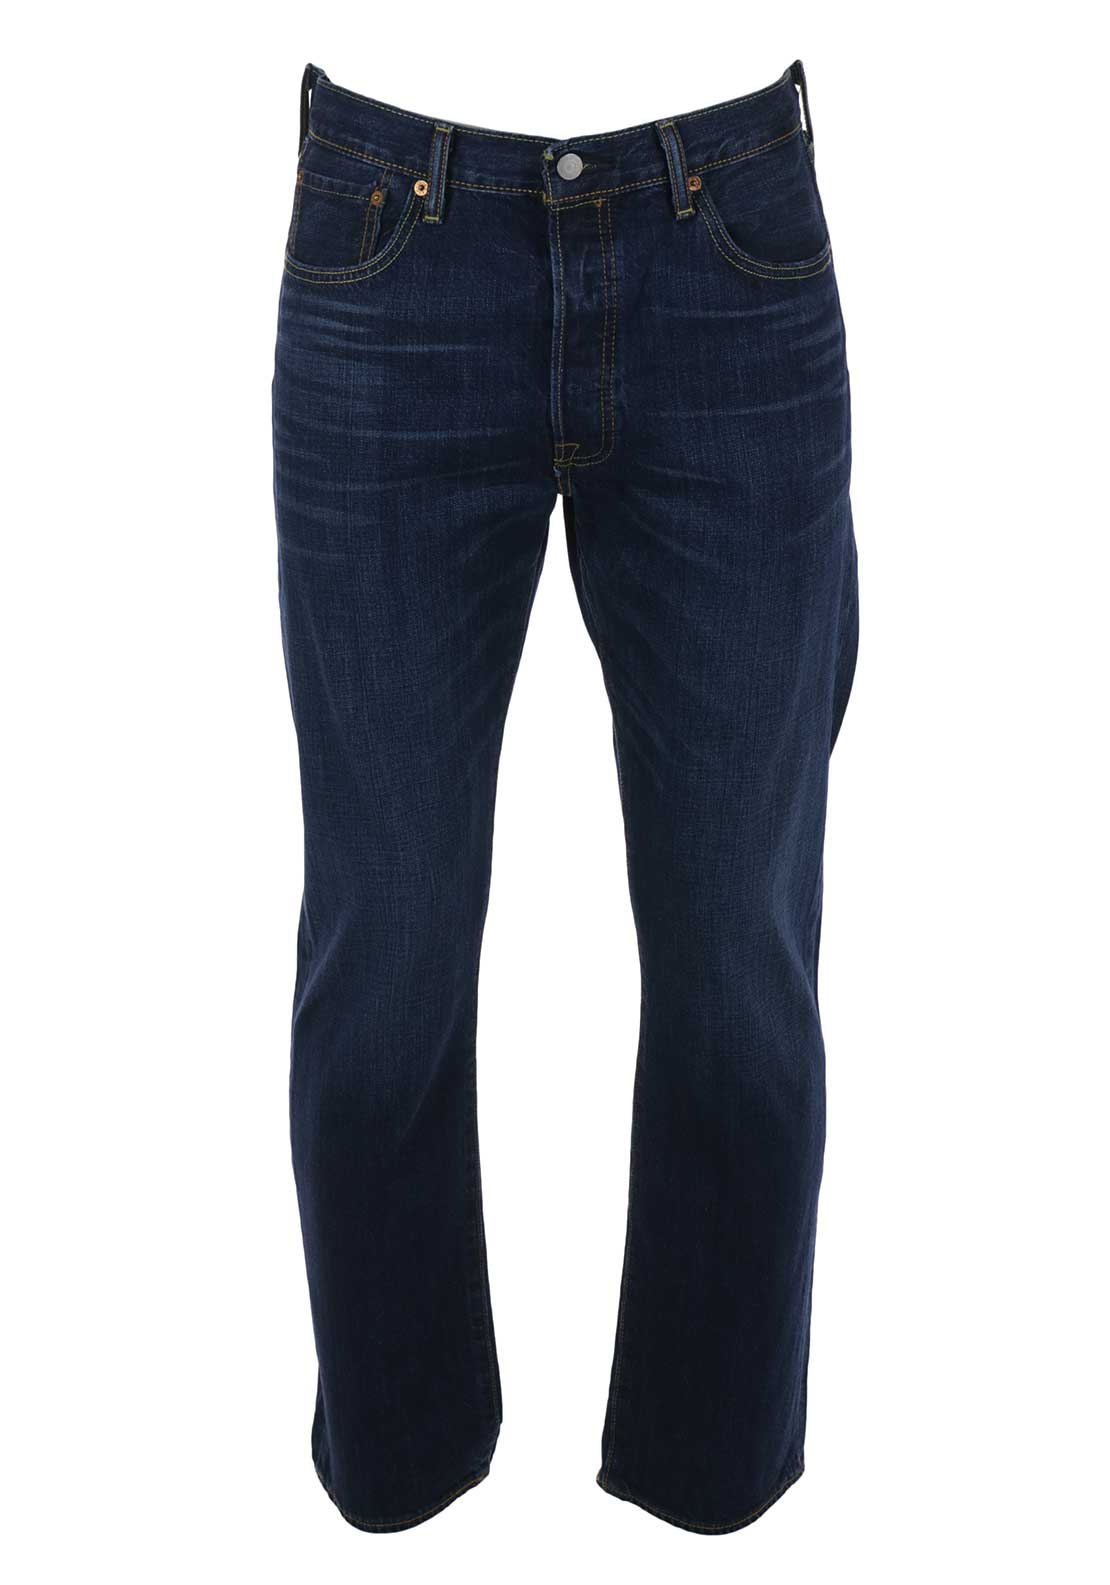 Levis Mens 501 Straight Leg Jeans, Blue